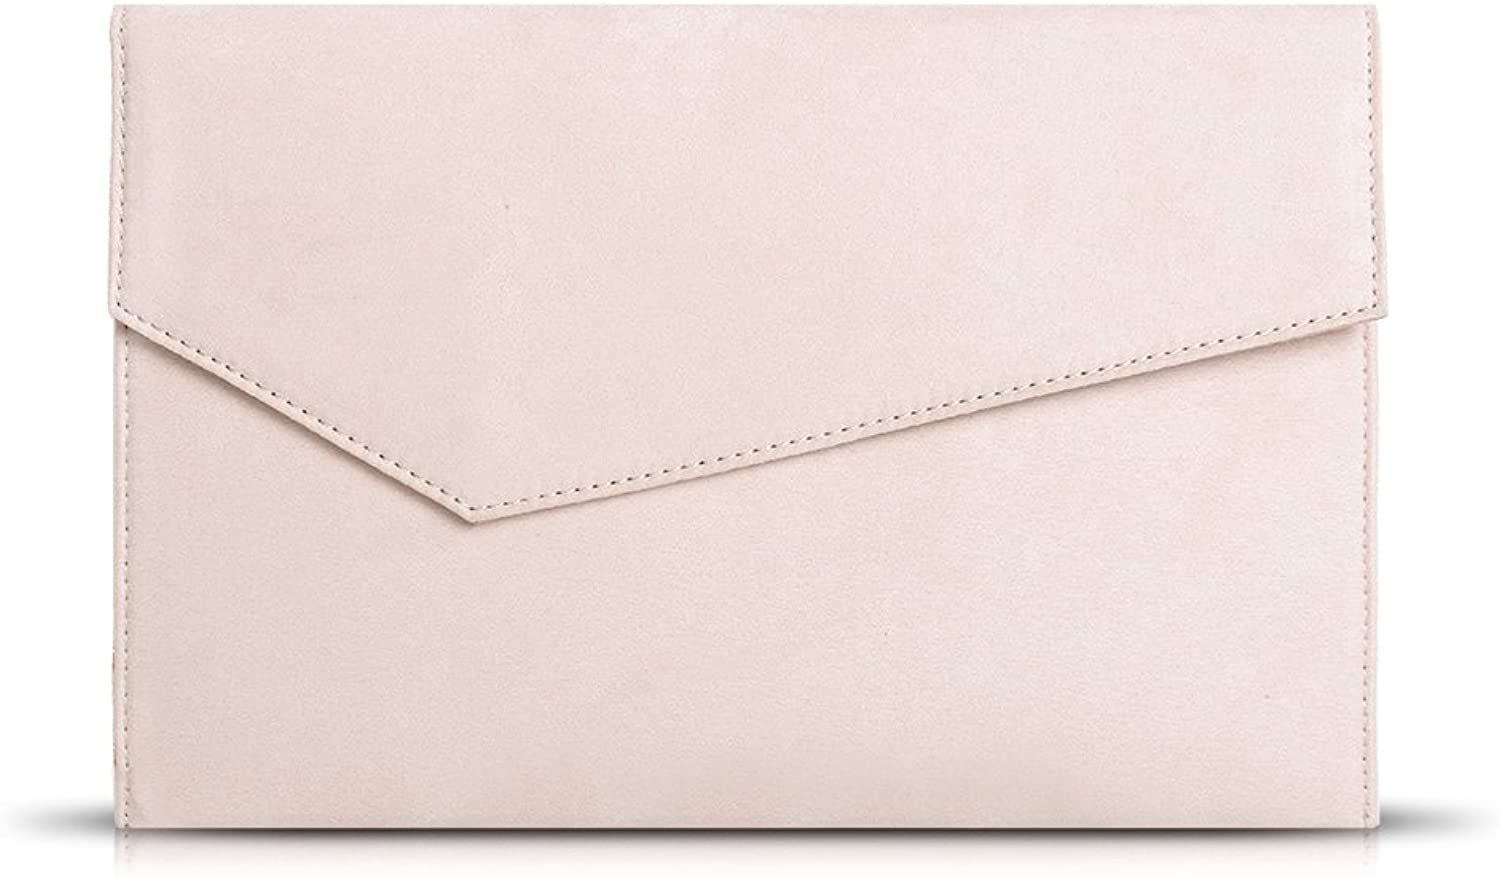 Anna Smith Women's Pure Faux Suede Envelope with Chain Purse Daily Clutch Bags